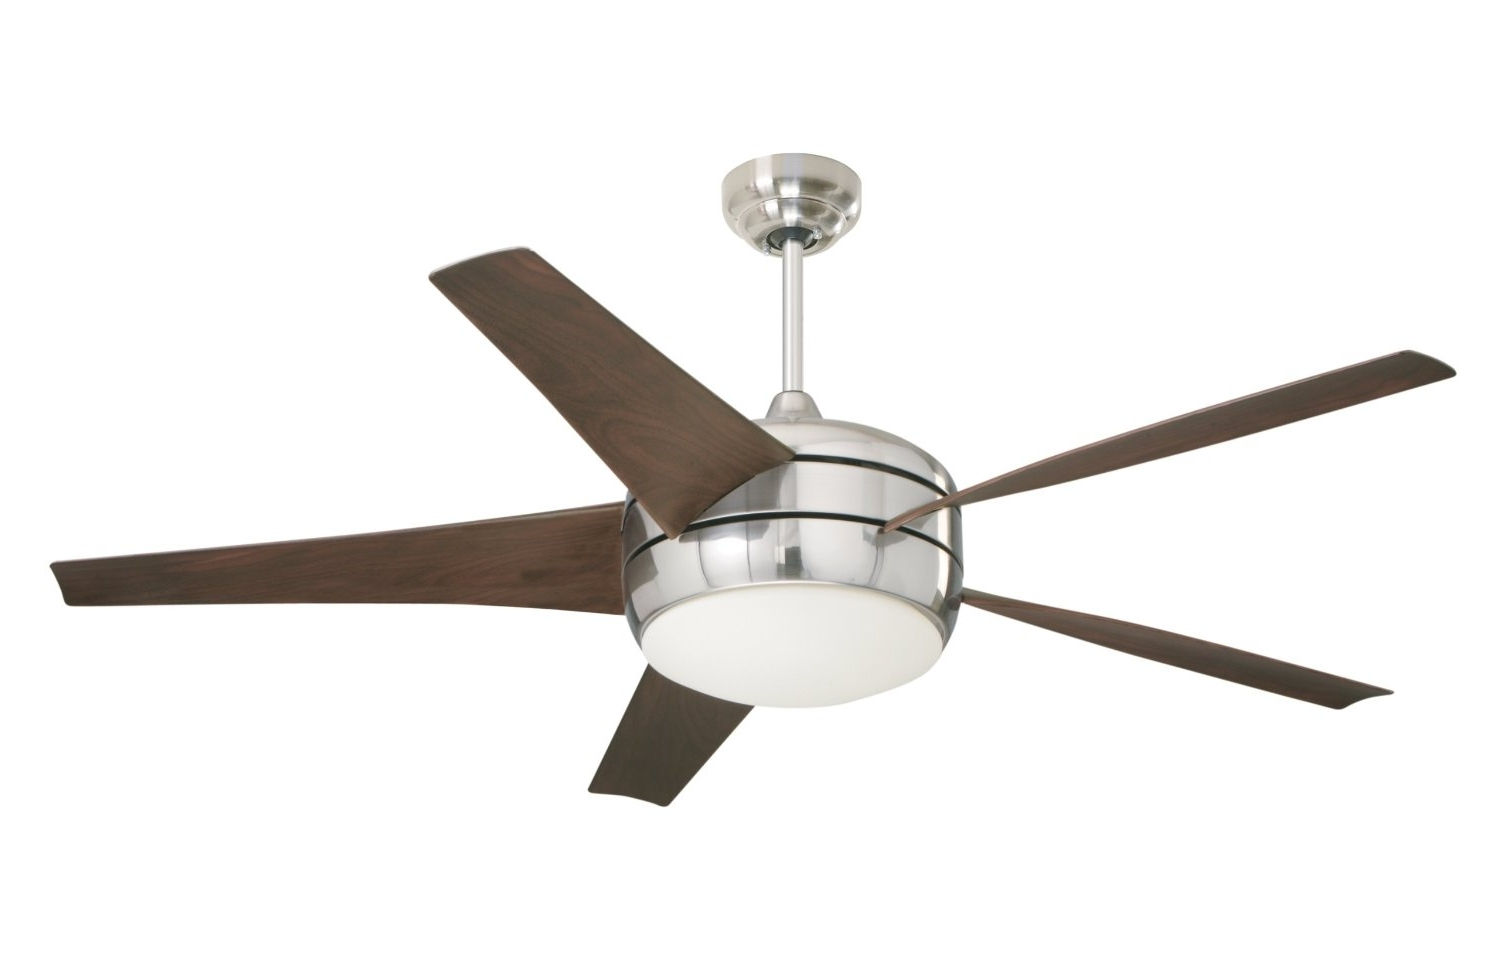 Best And Newest Best Ceiling Fans Reviews, Buying Guide And Comparison 2018 Pertaining To Efficient Outdoor Ceiling Fans (Gallery 2 of 20)